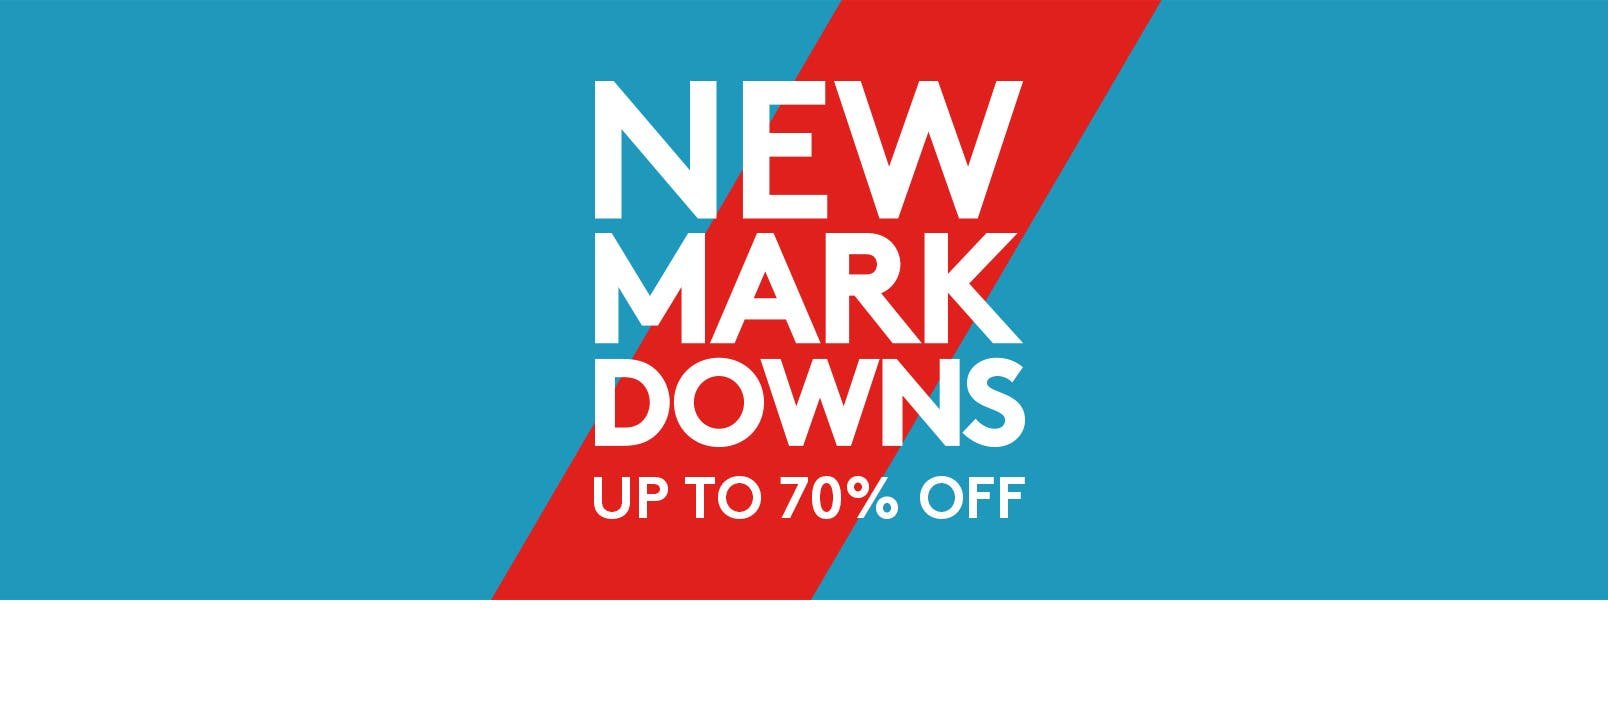 New markdowns up to seventy percent off.